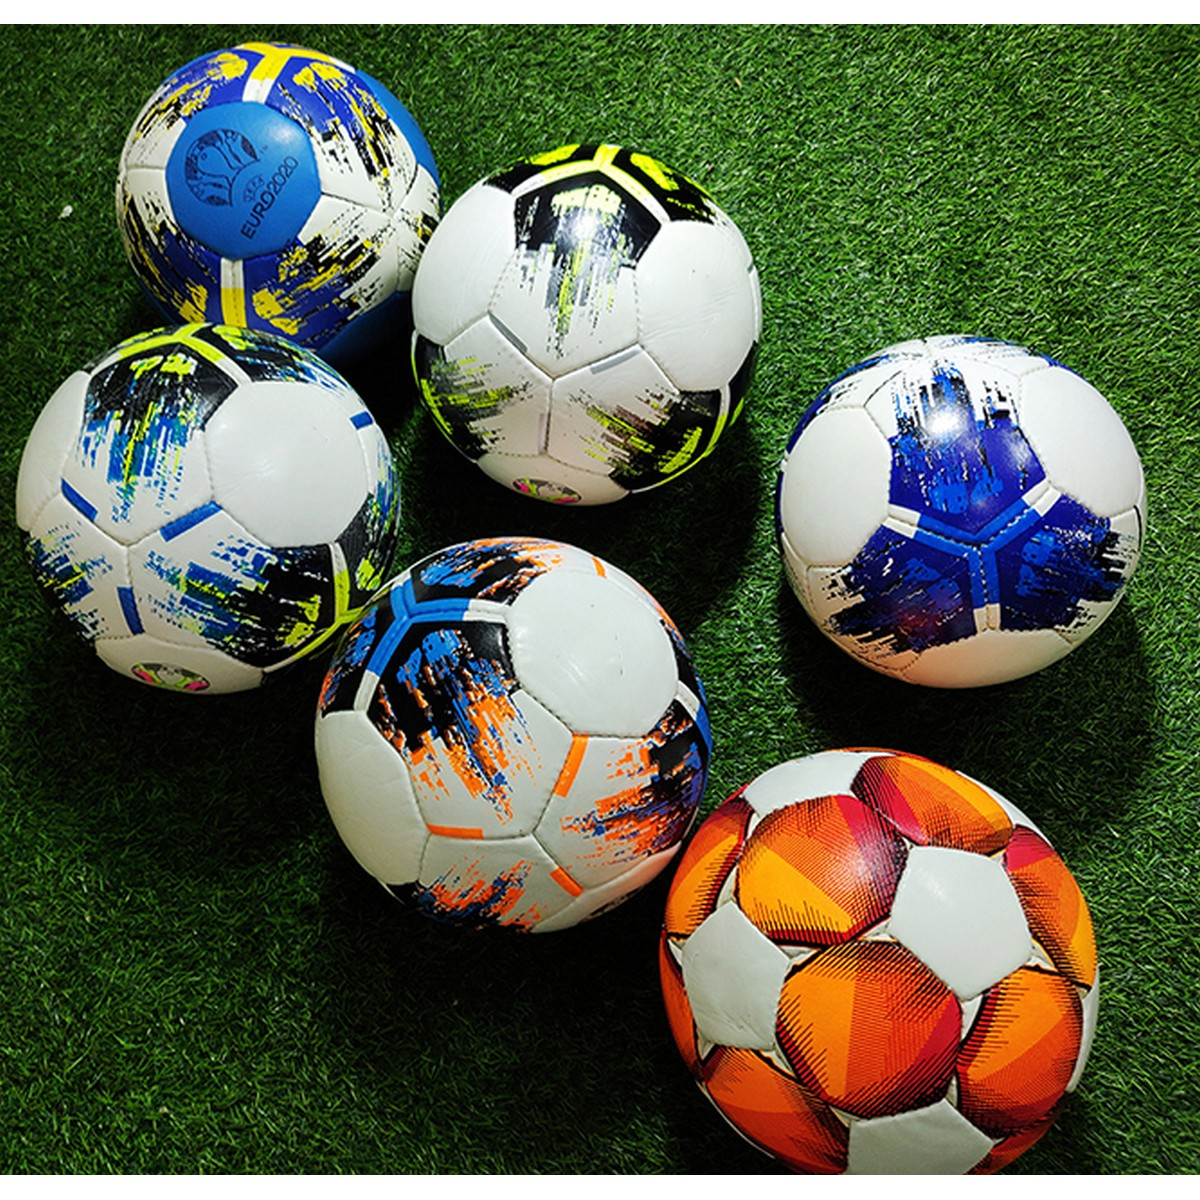 Export Quality Football 5 Standard Size - e Leather Football for Professional Game, For Boys Or Kids Football Games